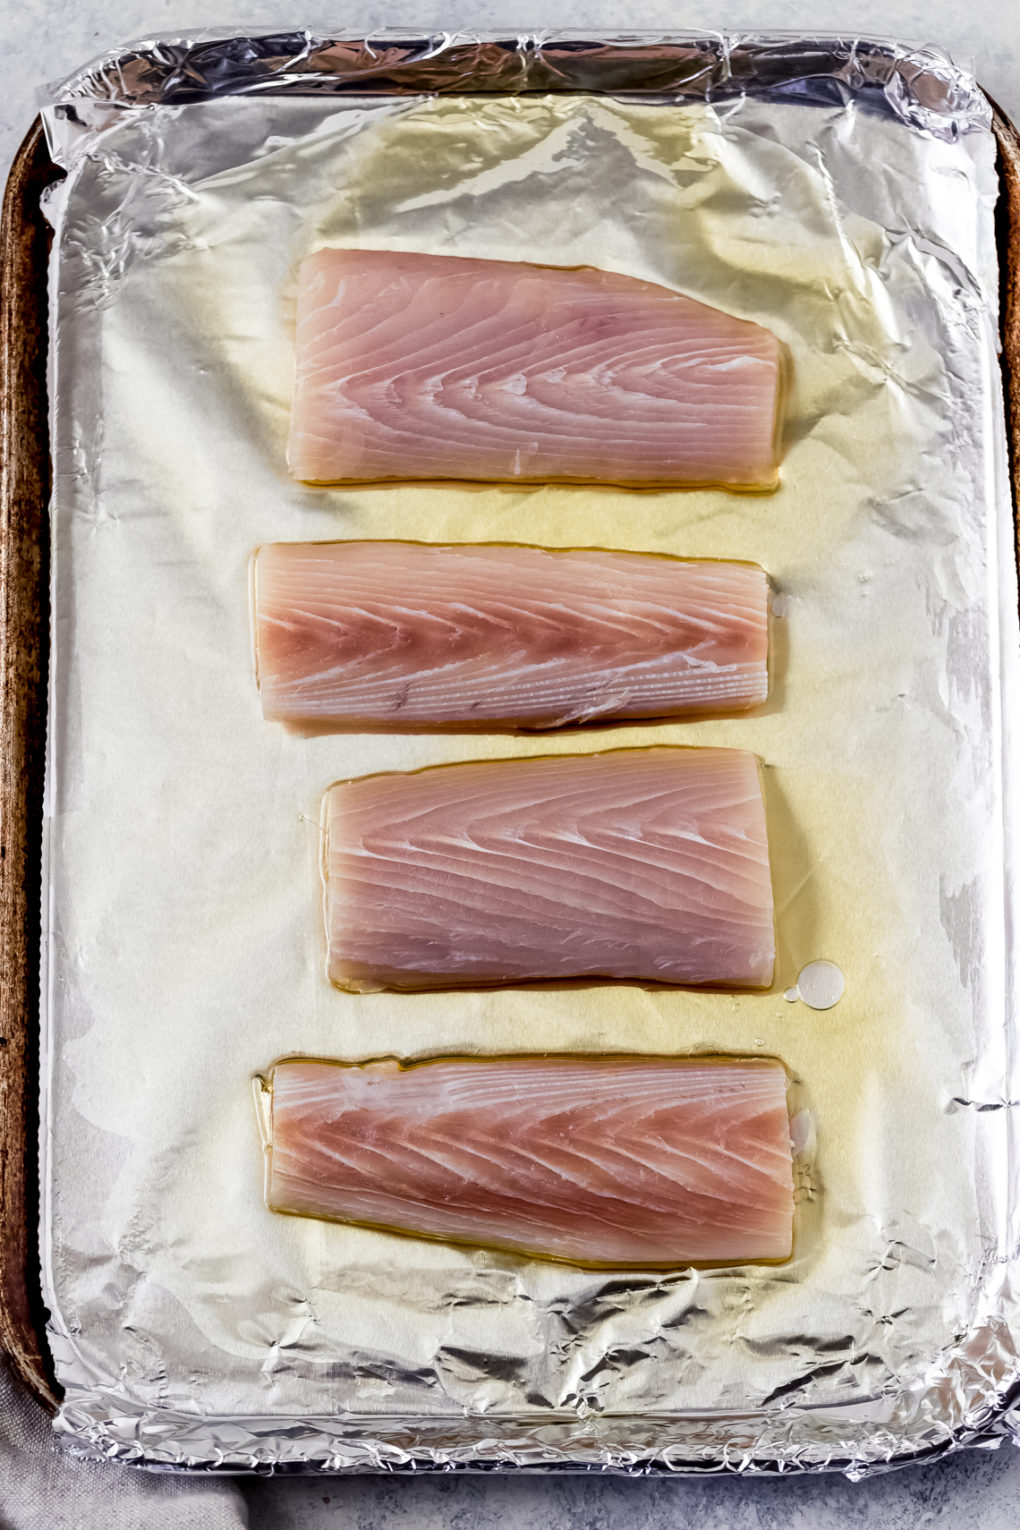 raw mahi mahi fillets on a foil lined sheet pan